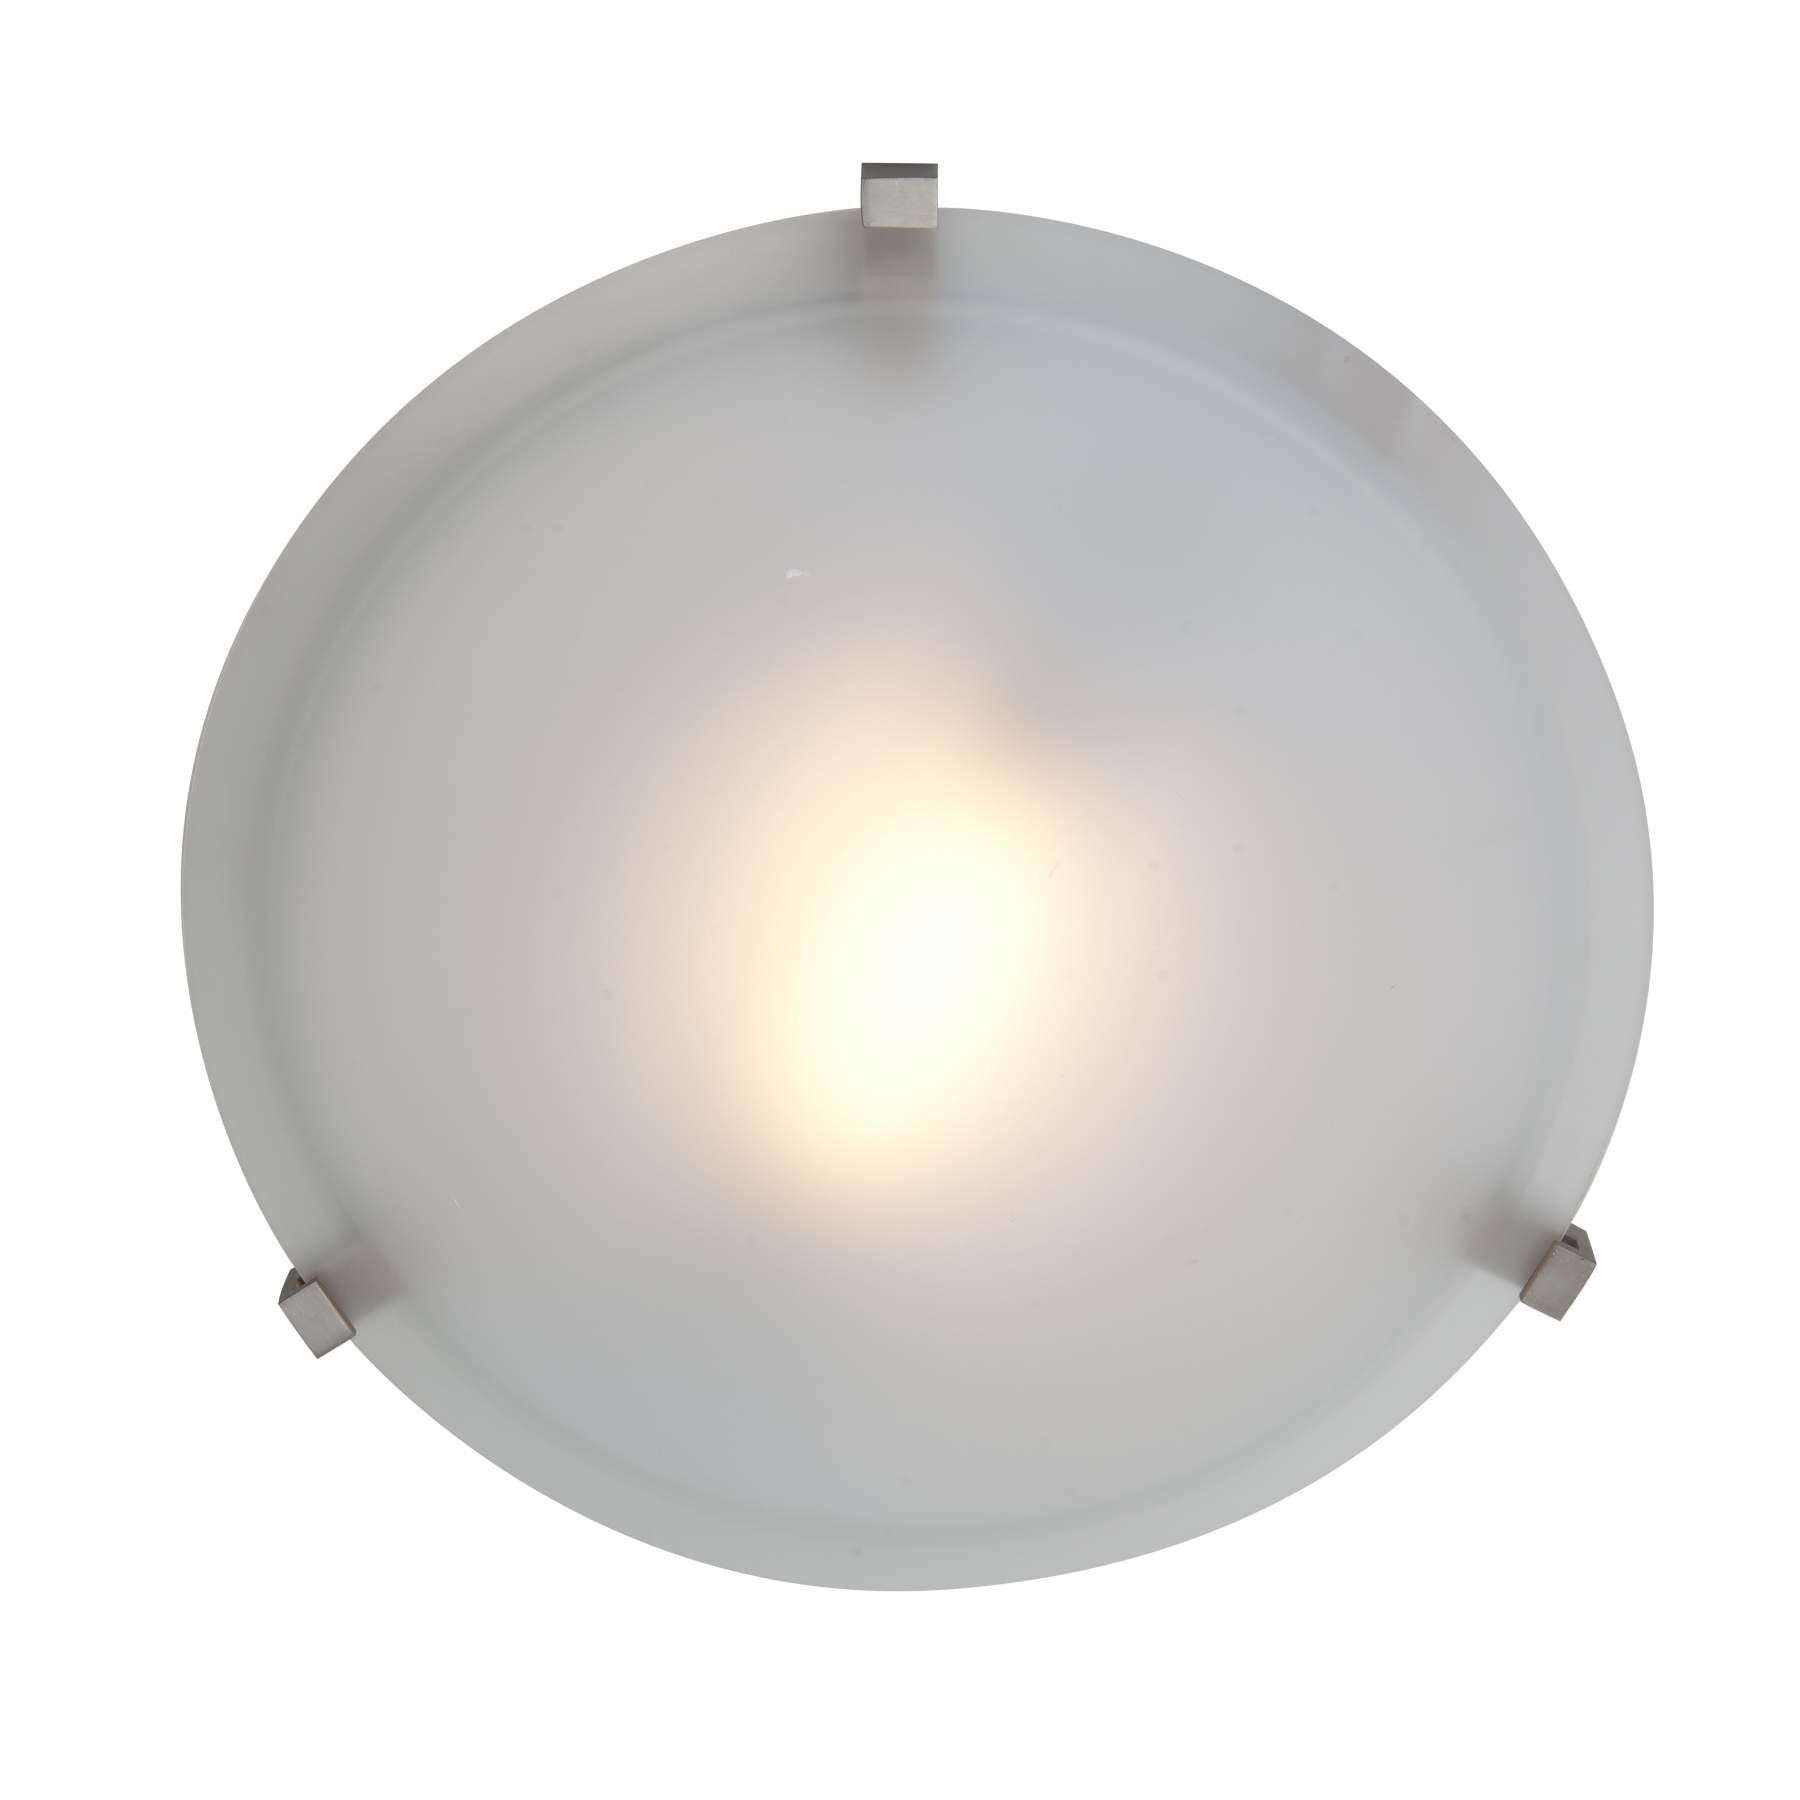 Access Lighting 50063-SAT/FST Cirrus Flush-Mount in Satin finish with Frosted glass